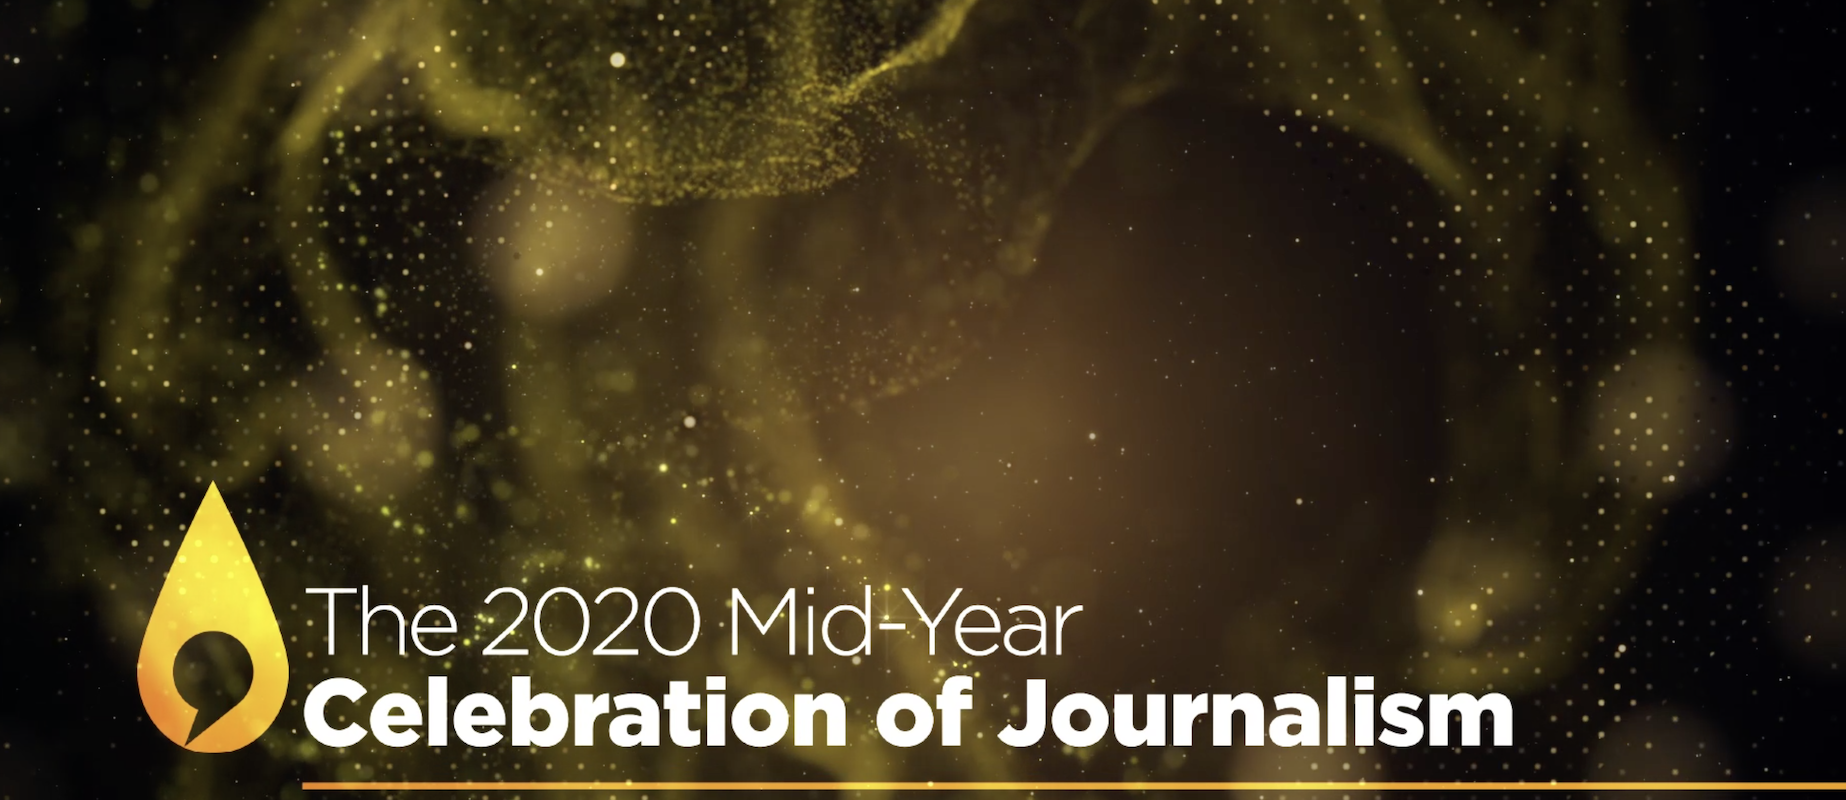 Winners unveiled for the 2020 Mid-Year Celebration of Journalism